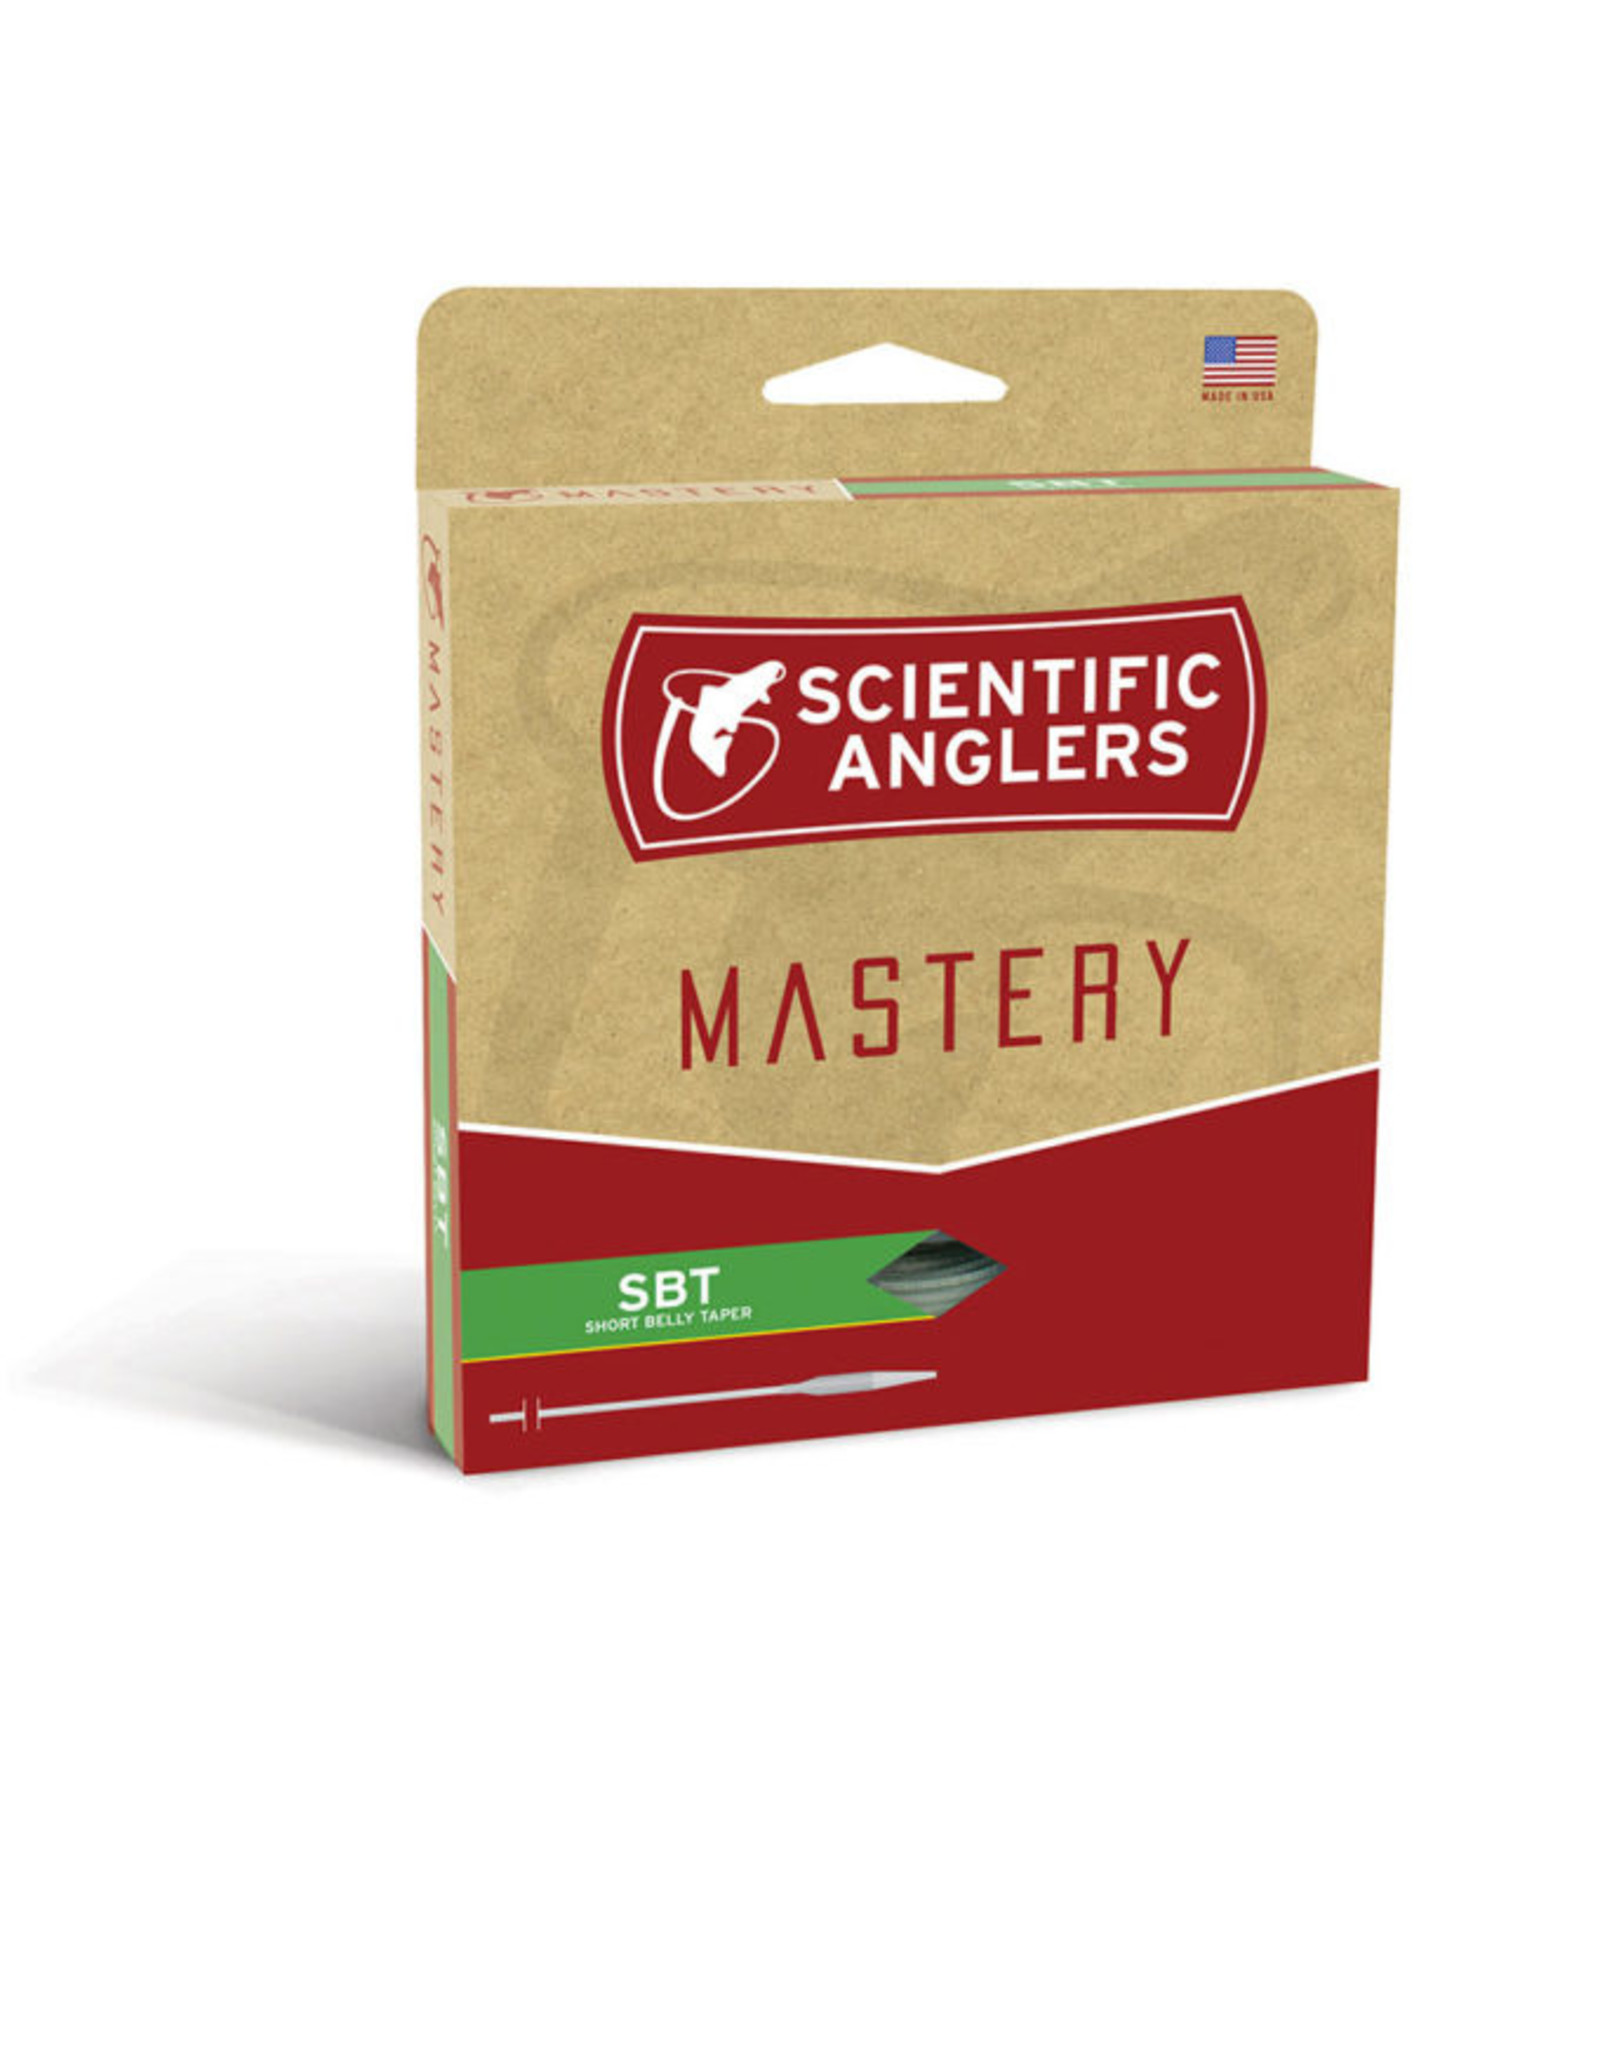 Scientific Anglers Scientific Anglers - Mastery SBT Fly Line